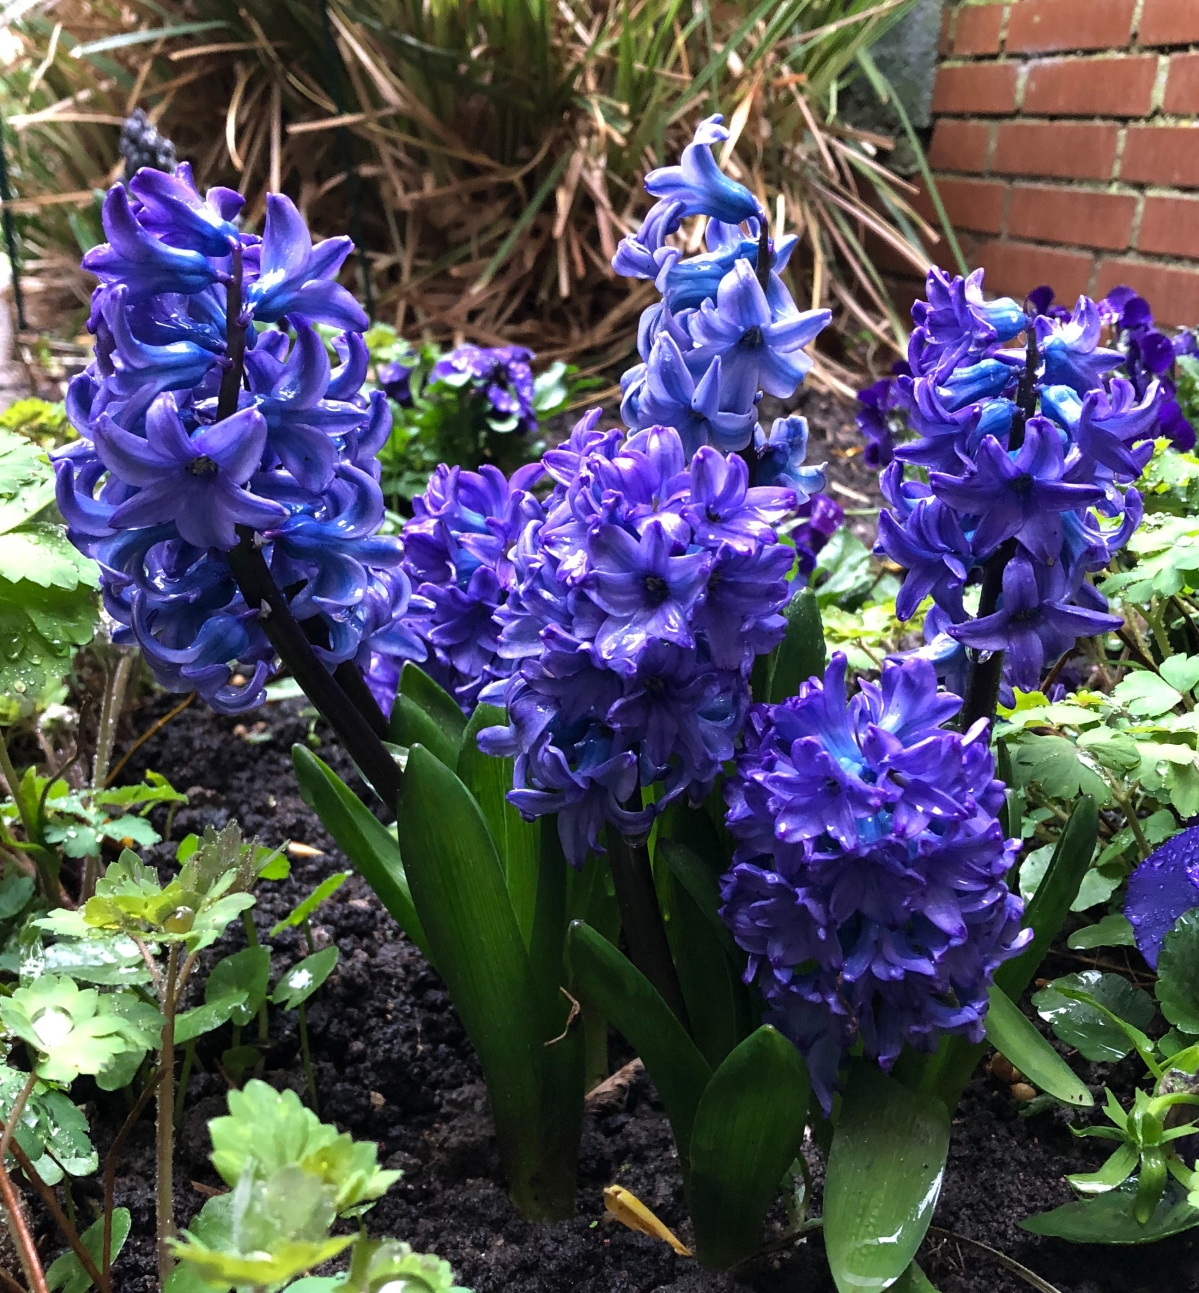 Hyacinth in my front garden